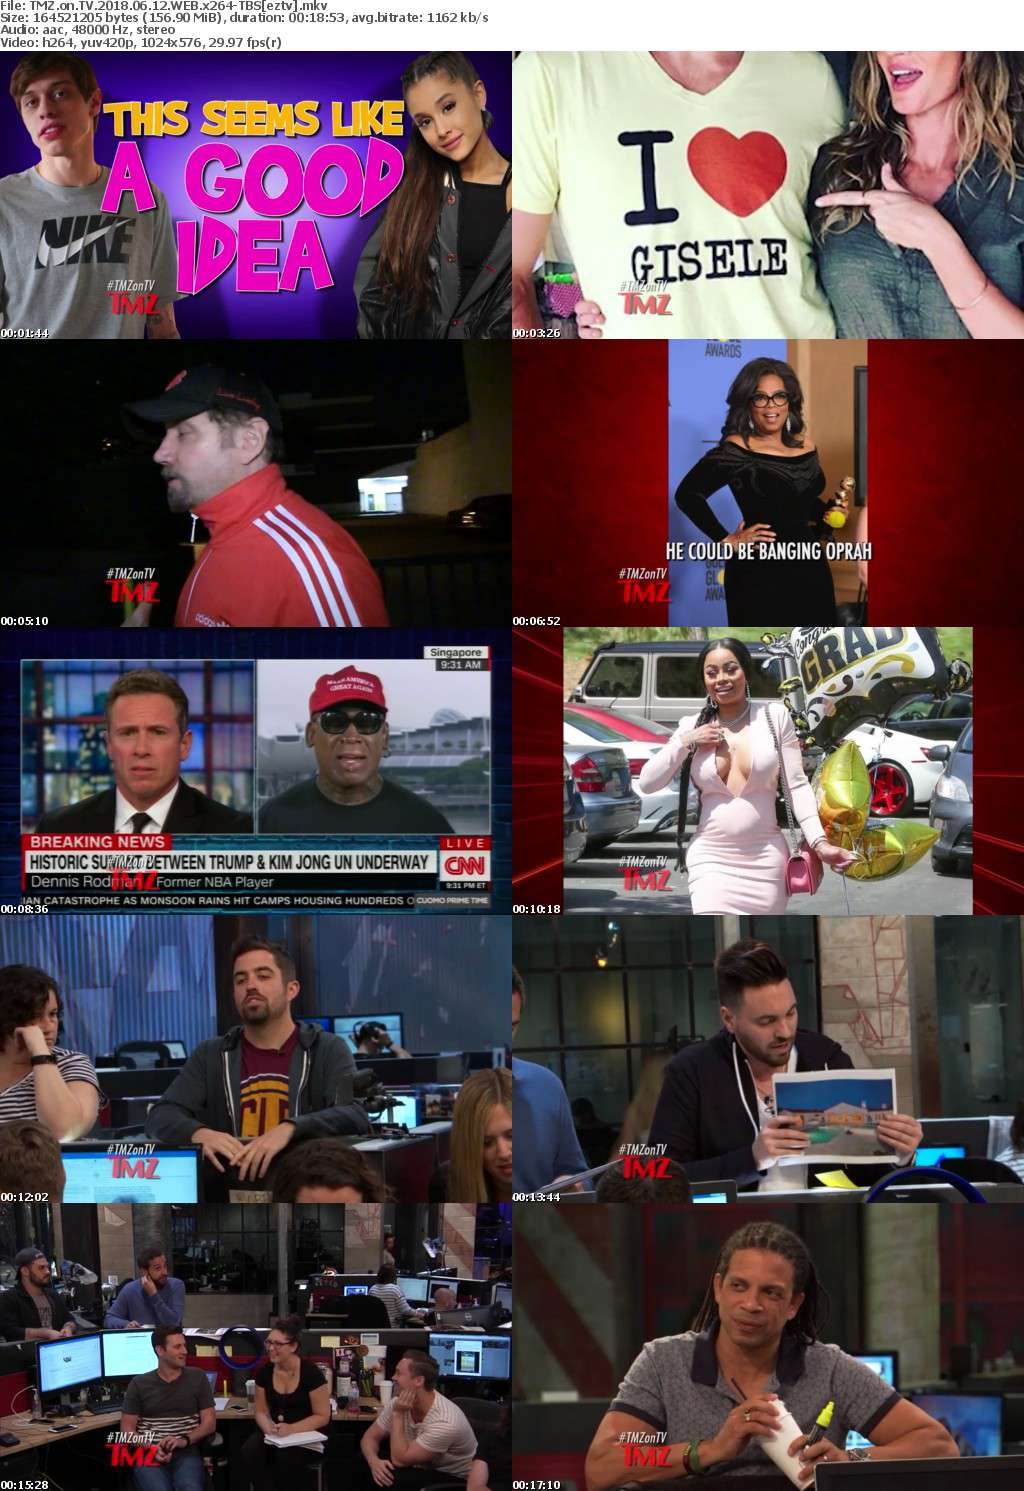 TMZ on TV 2018 06 12 WEB x264-TBS